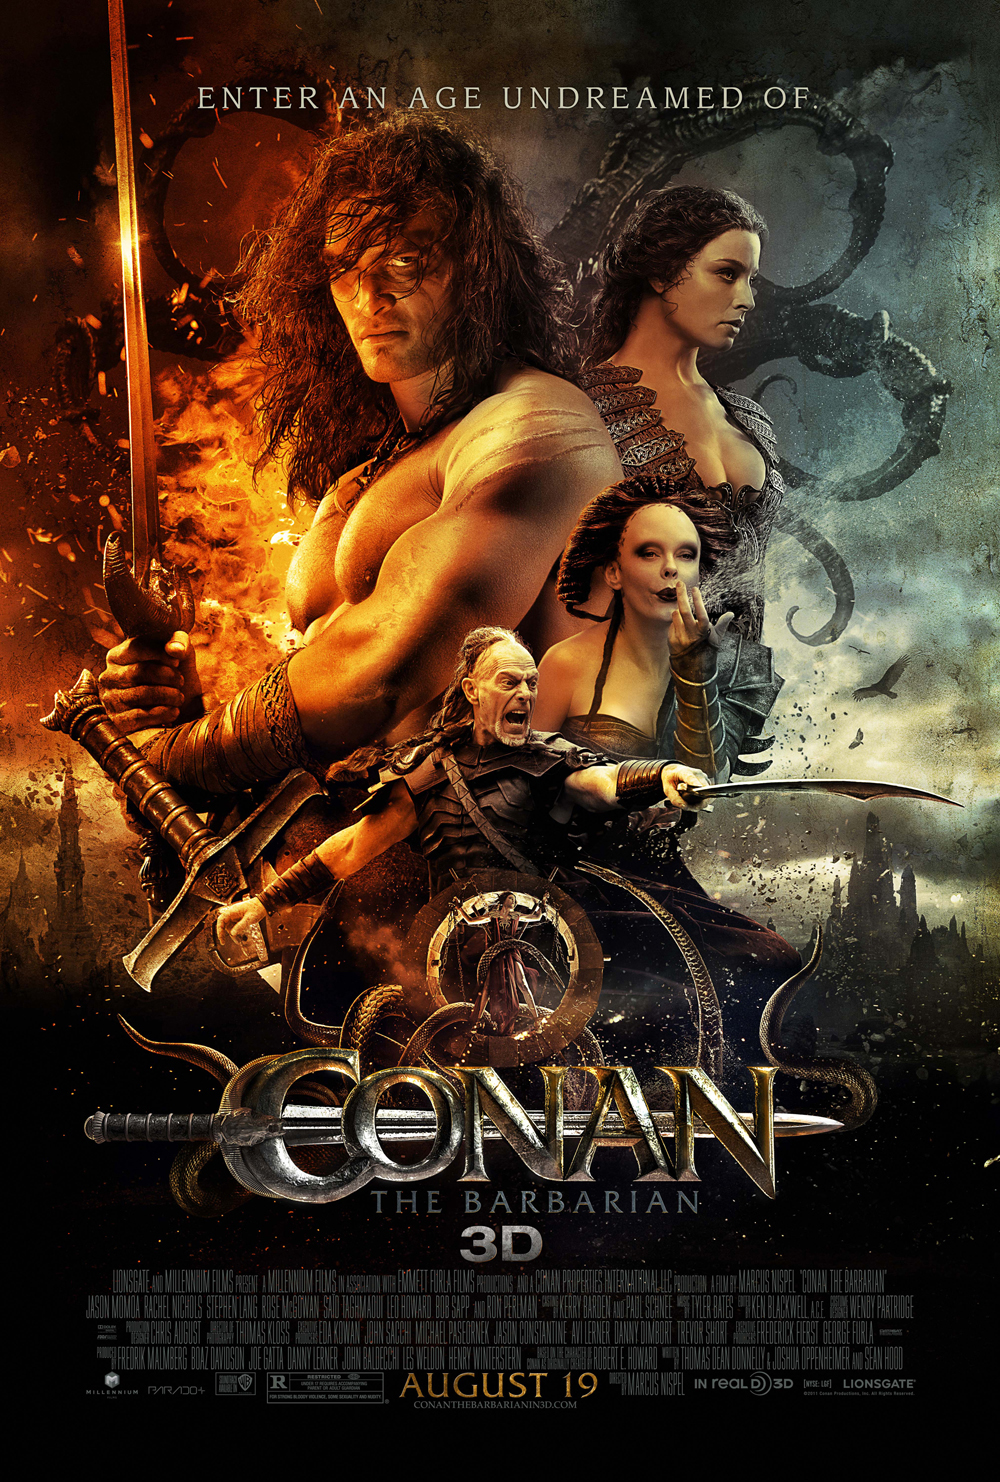 conan-the-barbarian-in-3d